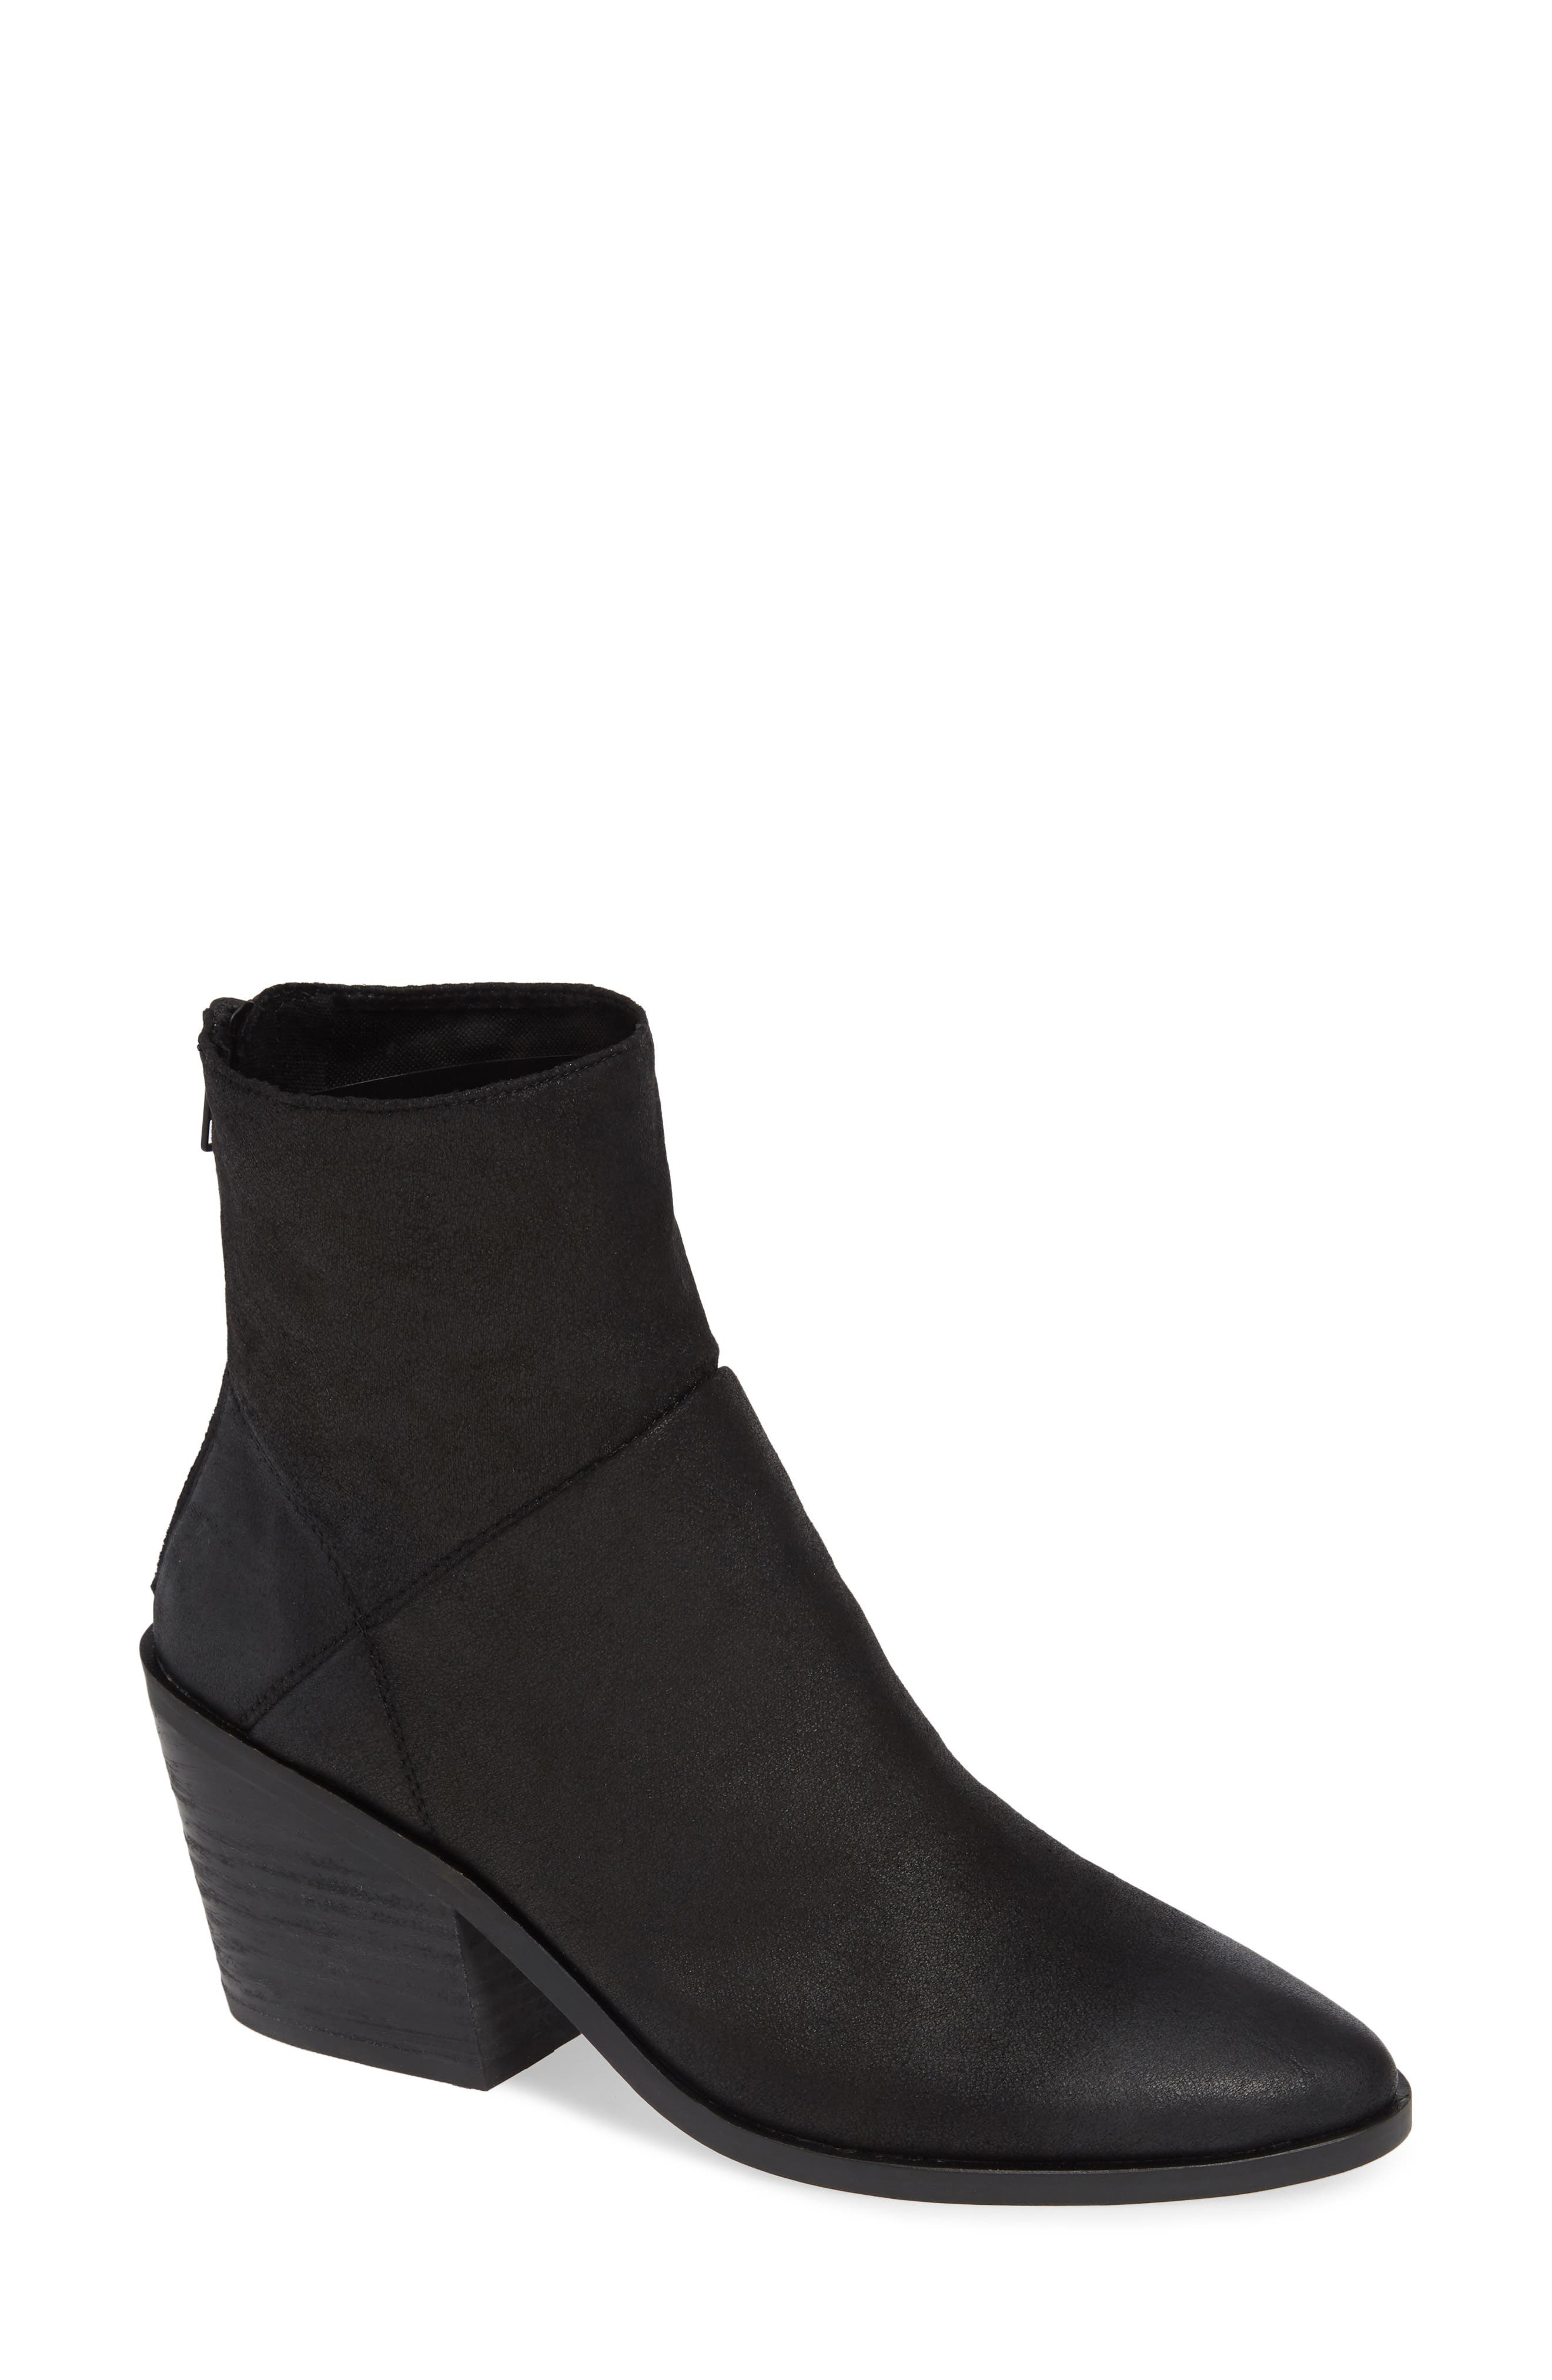 BAND OF GYPSIES Lakota Bootie in Black Faux Leather